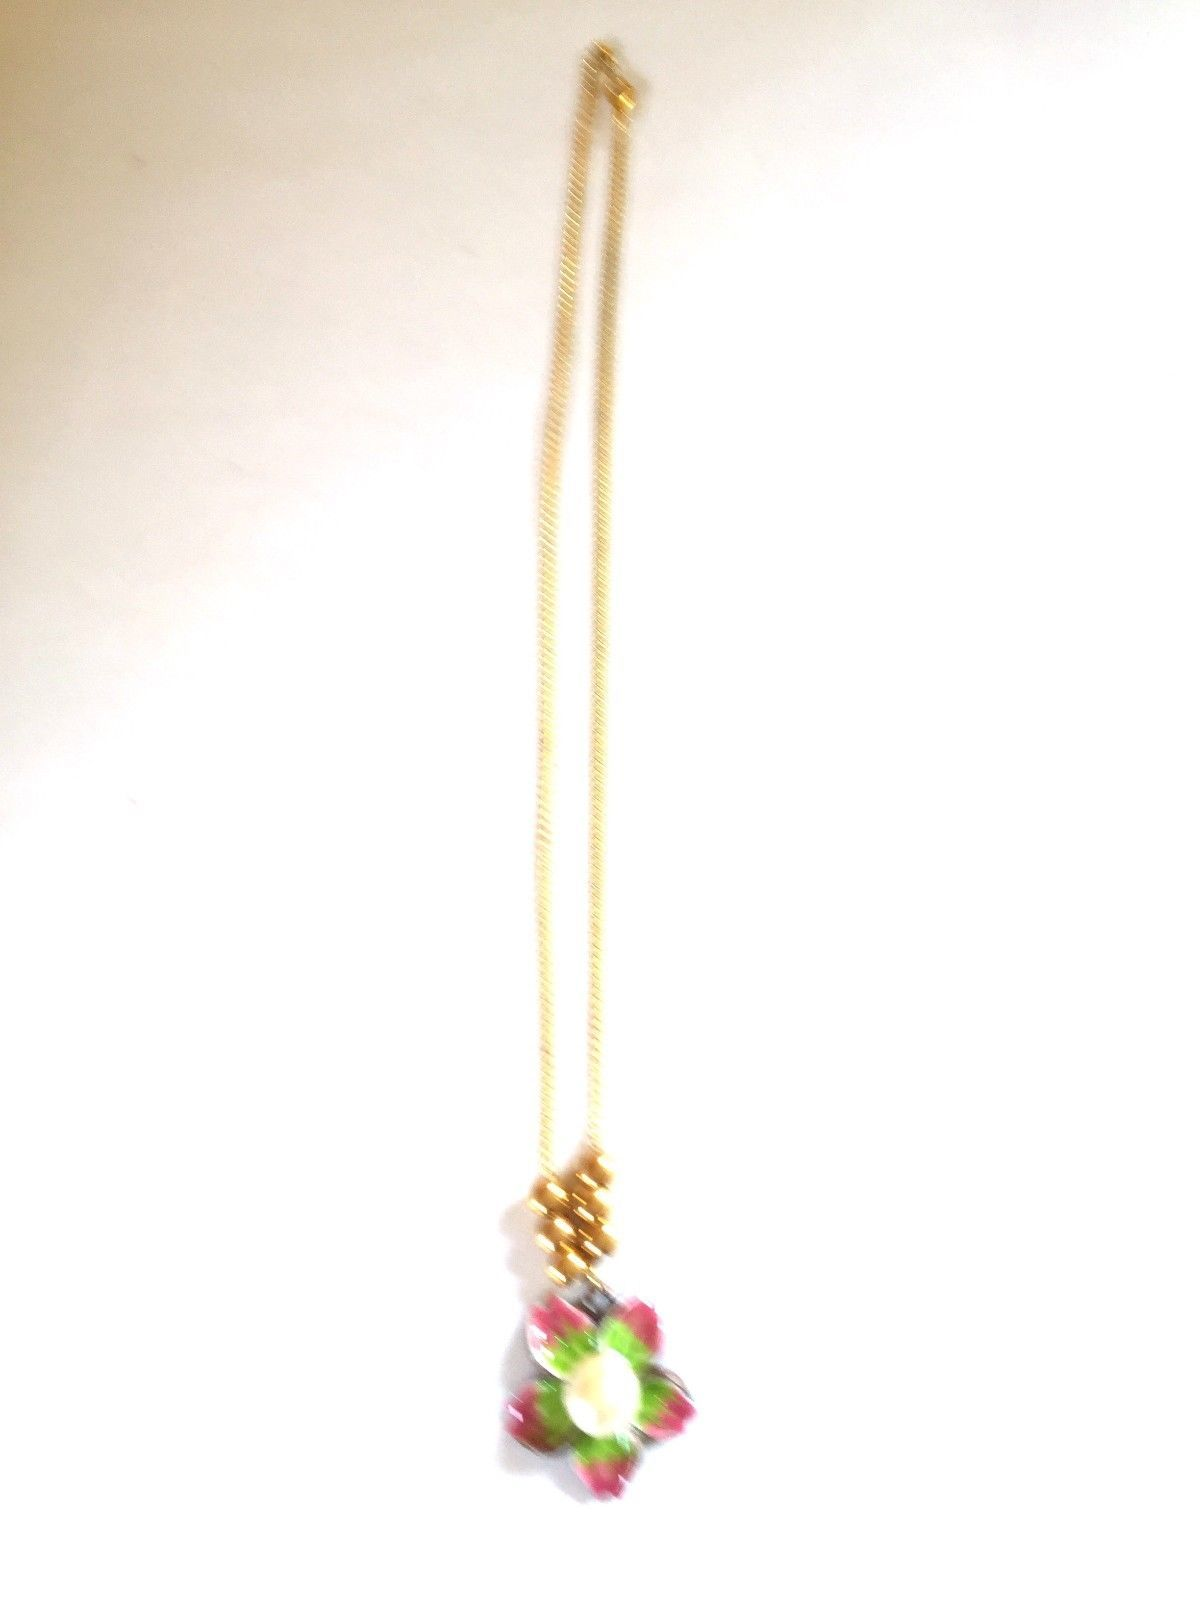 Enamel Flower Charm Necklace 17 inches Goldtone with Ball Accents image 2